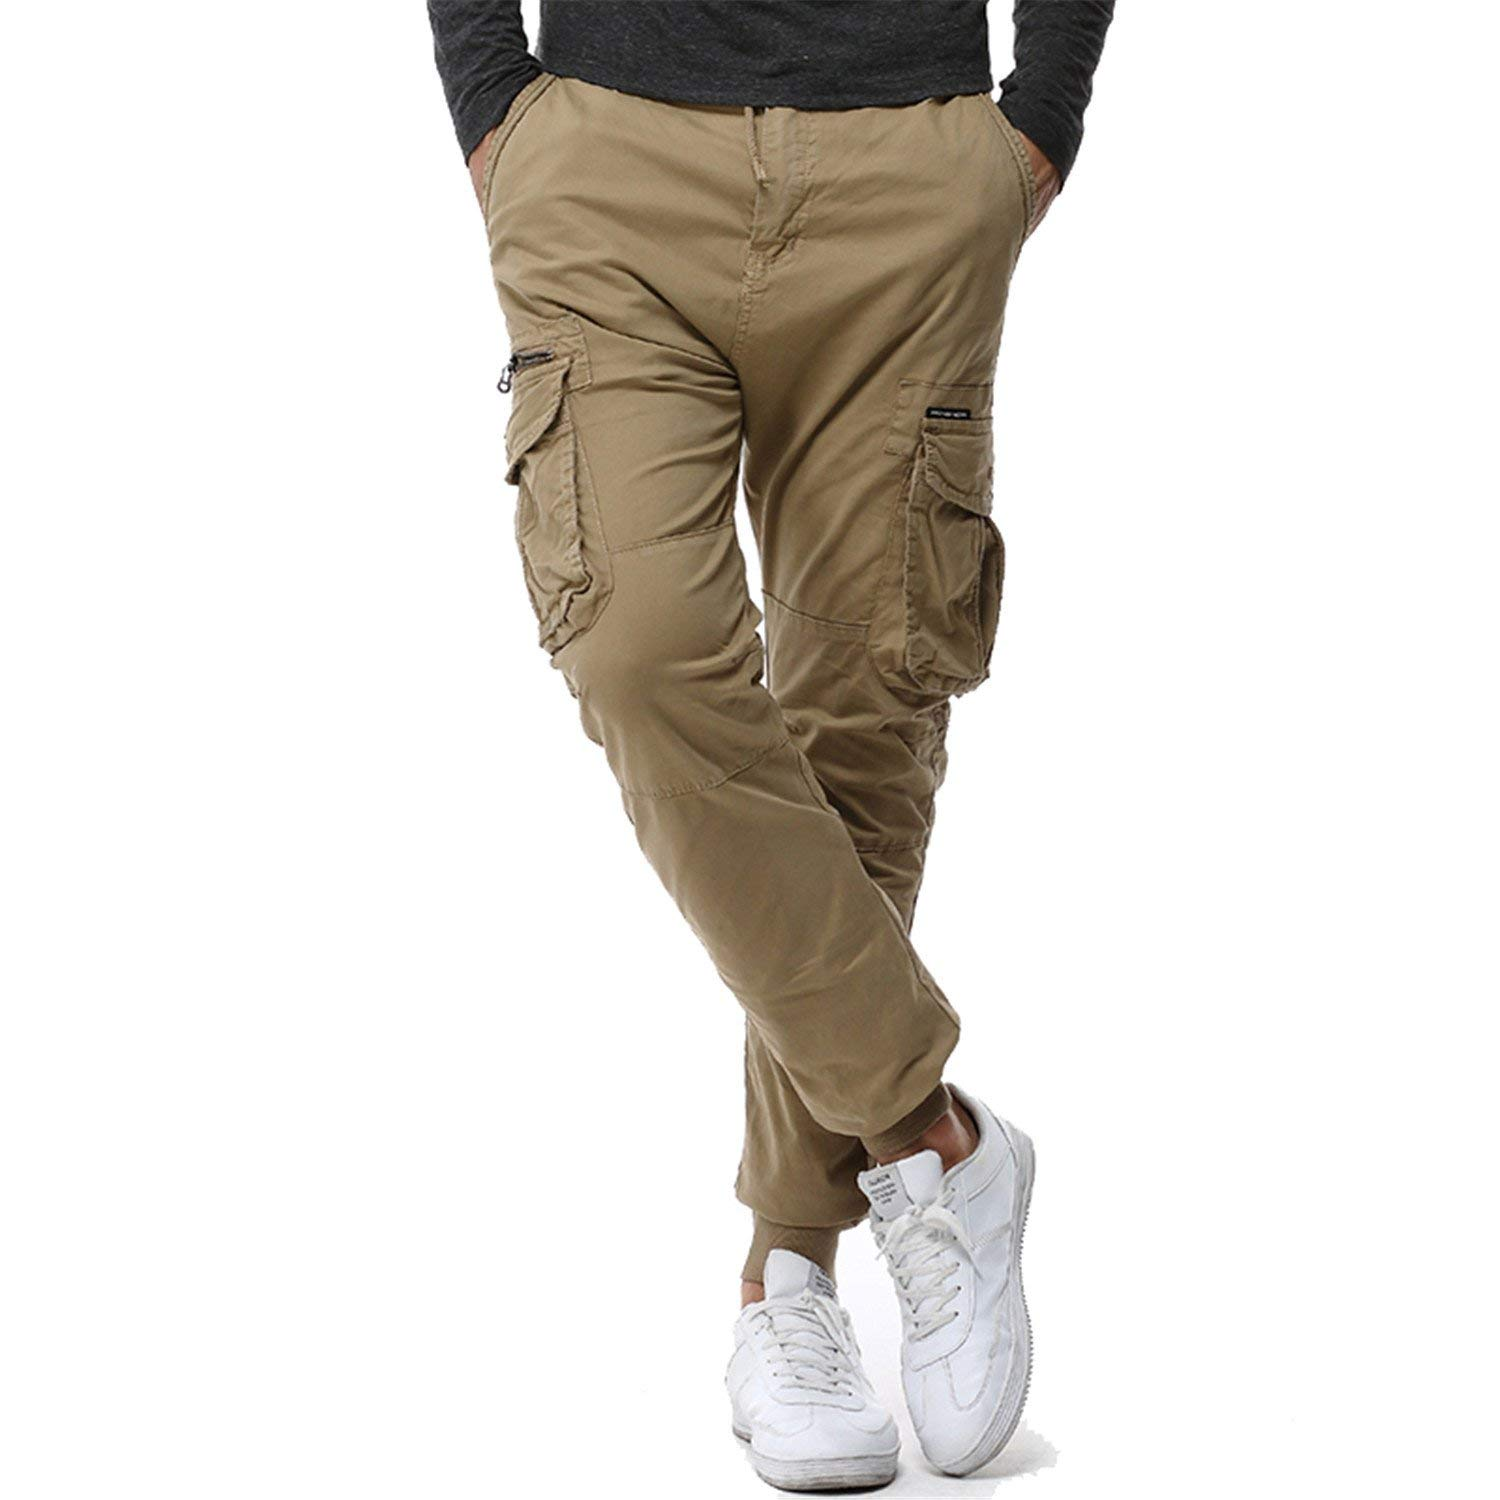 Jeff Tribble Mens Camouflage Tactical Cargo Pants Joggers Boost Military Casual Pants Hip Hop Army Trousers 38